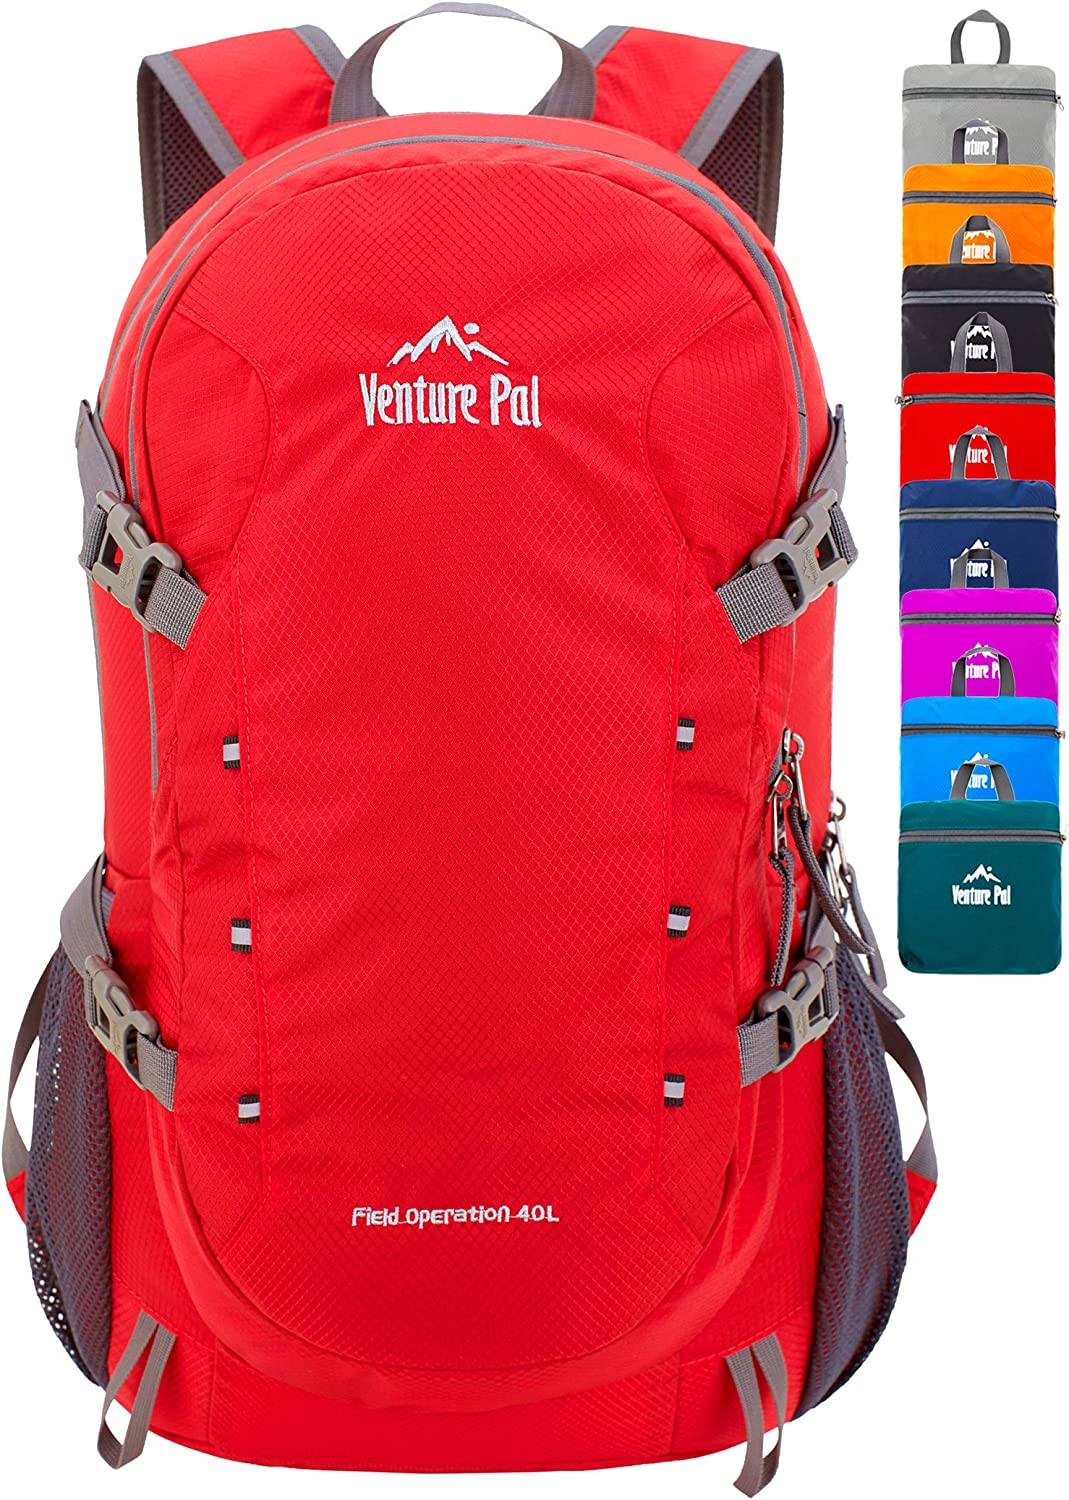 Venture Sale Pal 40L Lightweight Packable Backpack Travel Baltimore Mall Hiking Dayp